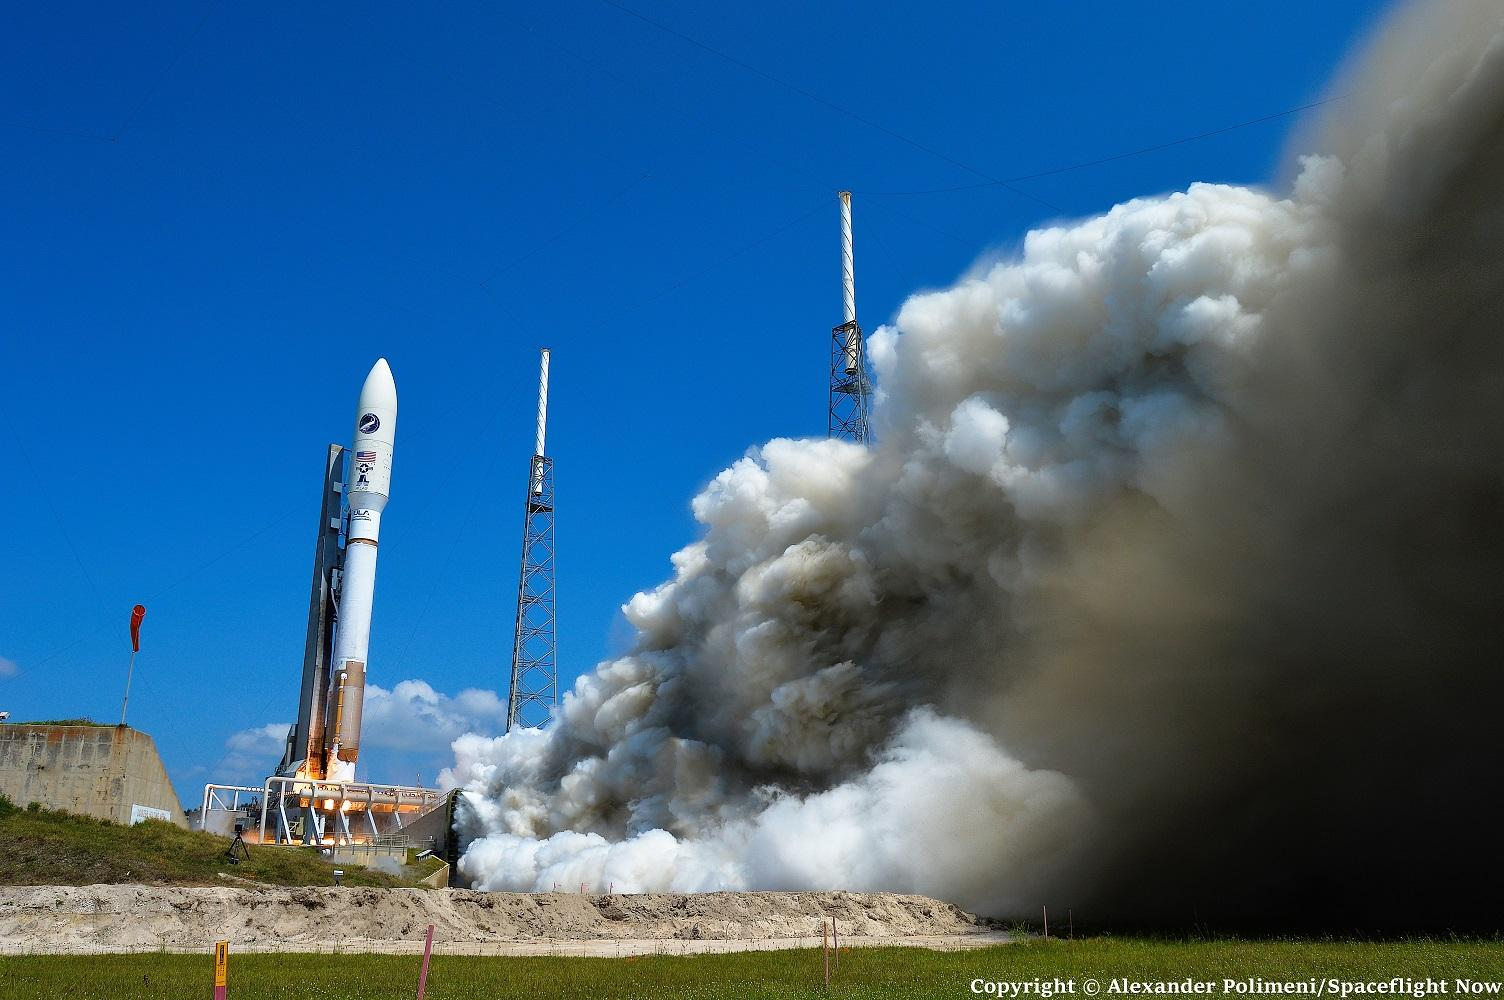 AFSPC-5/Atlas V 501 [May 20, 2015]